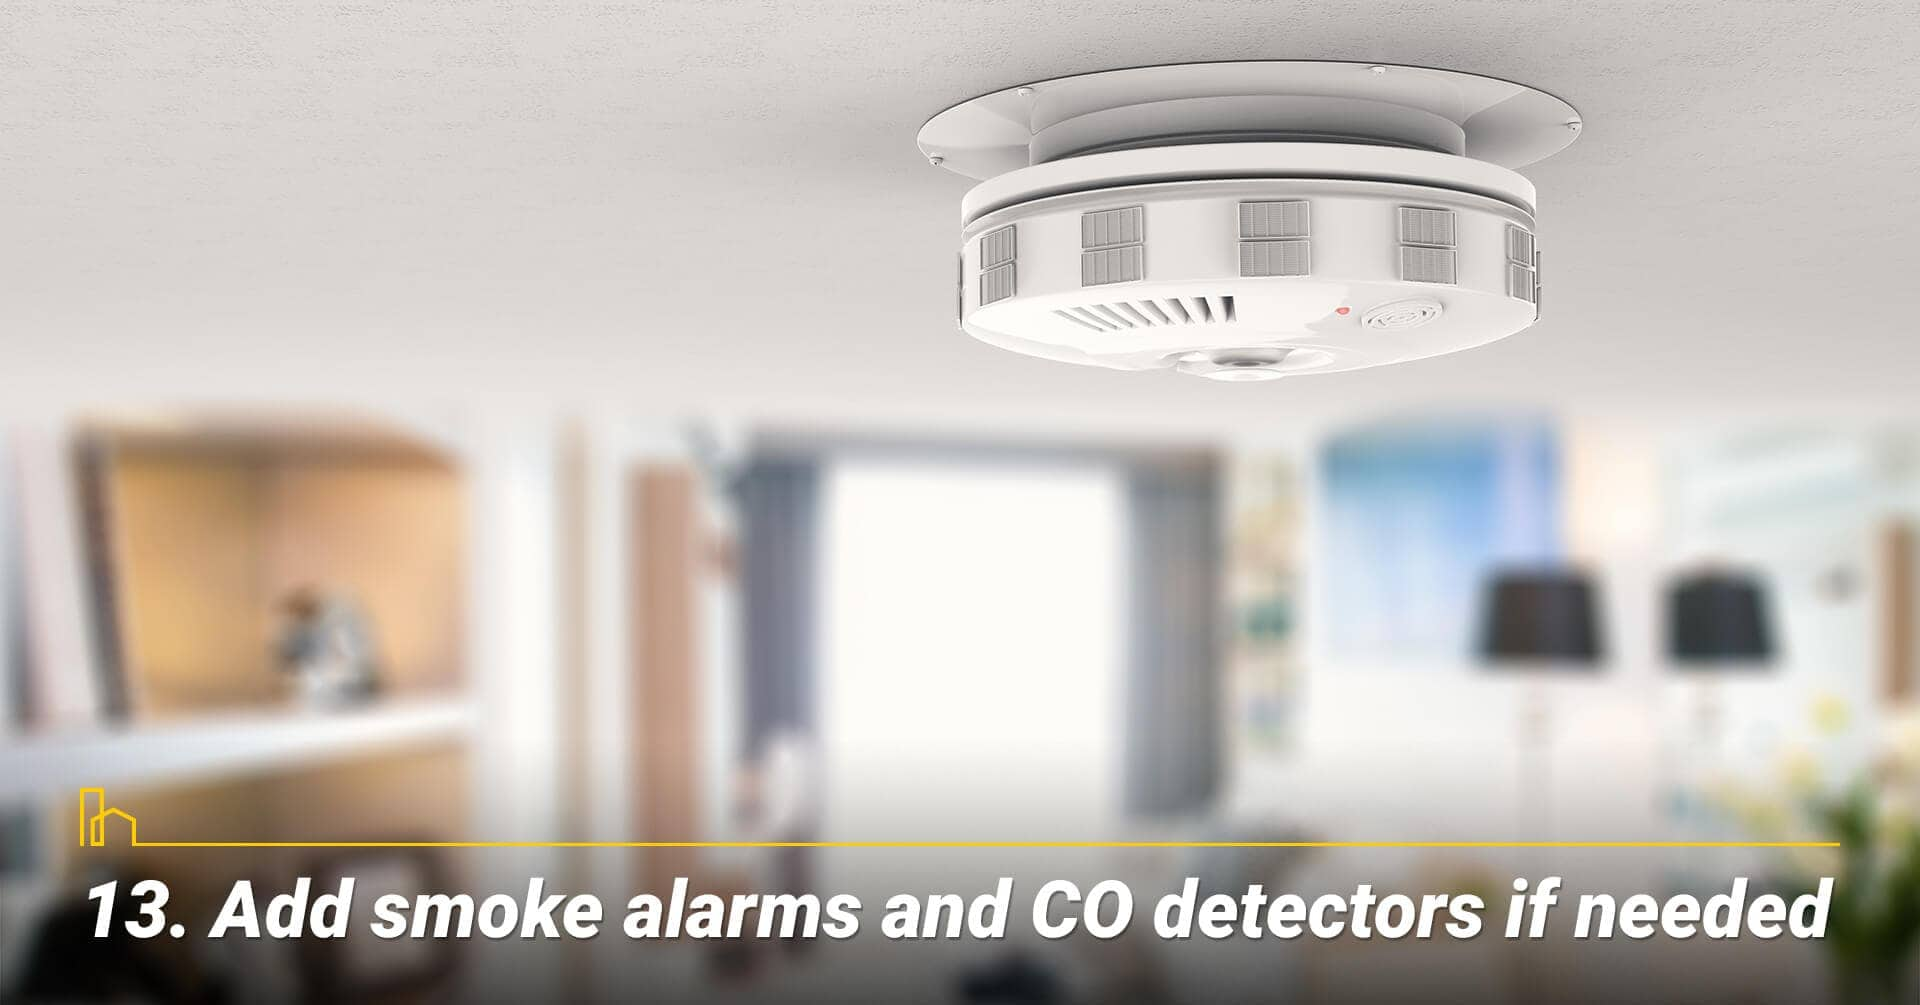 Add smoke alarms and CO detectors if needed, replace old smoke alarms and CO detectors